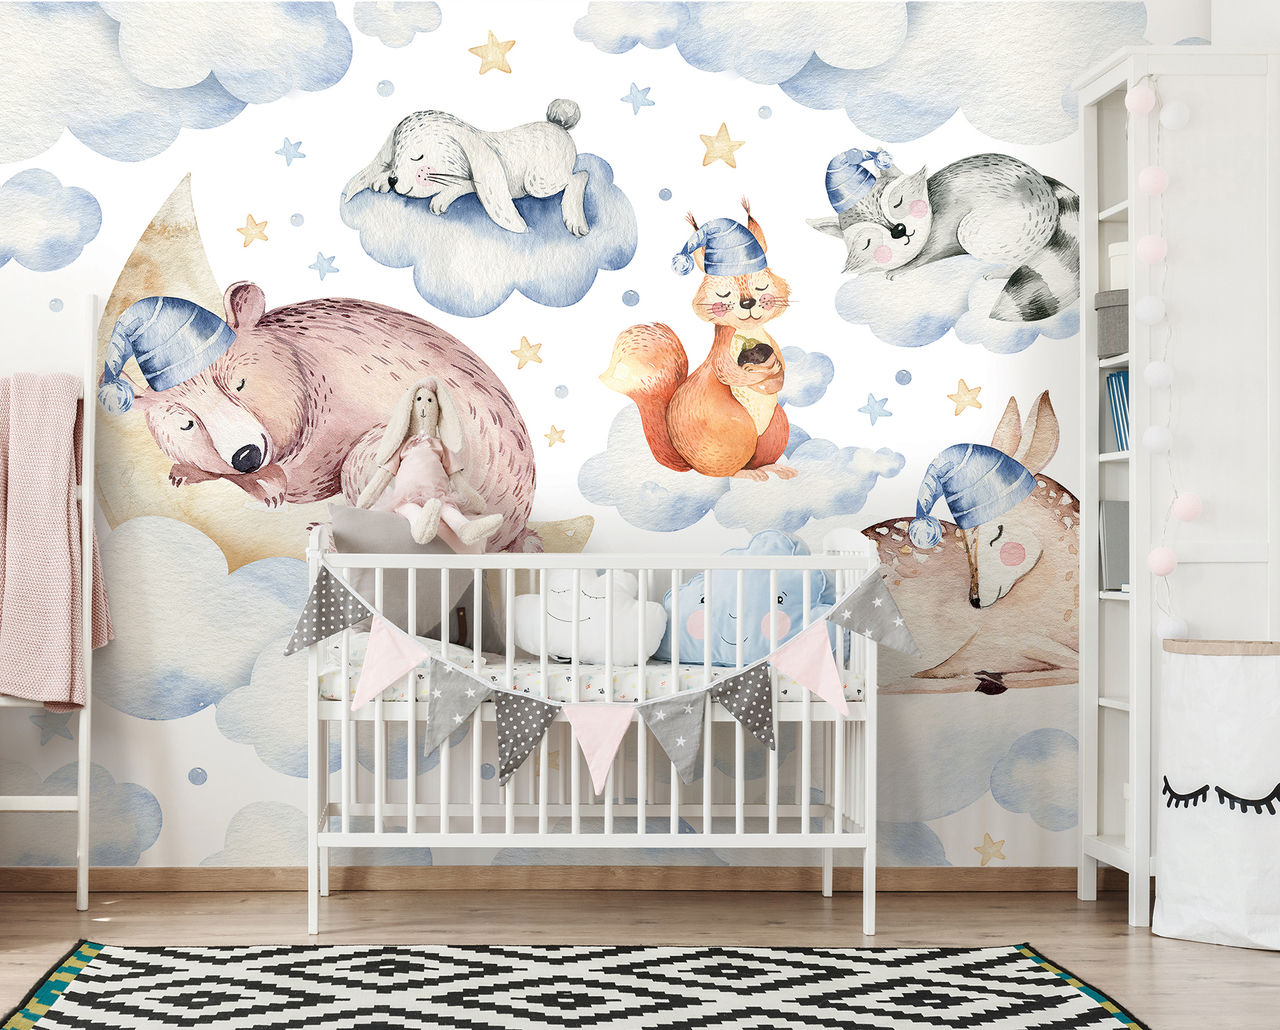 animals-Wallpapers-prints 10 Cute Ways to Use Removable Wallpaper for Your Kid's Bedroom